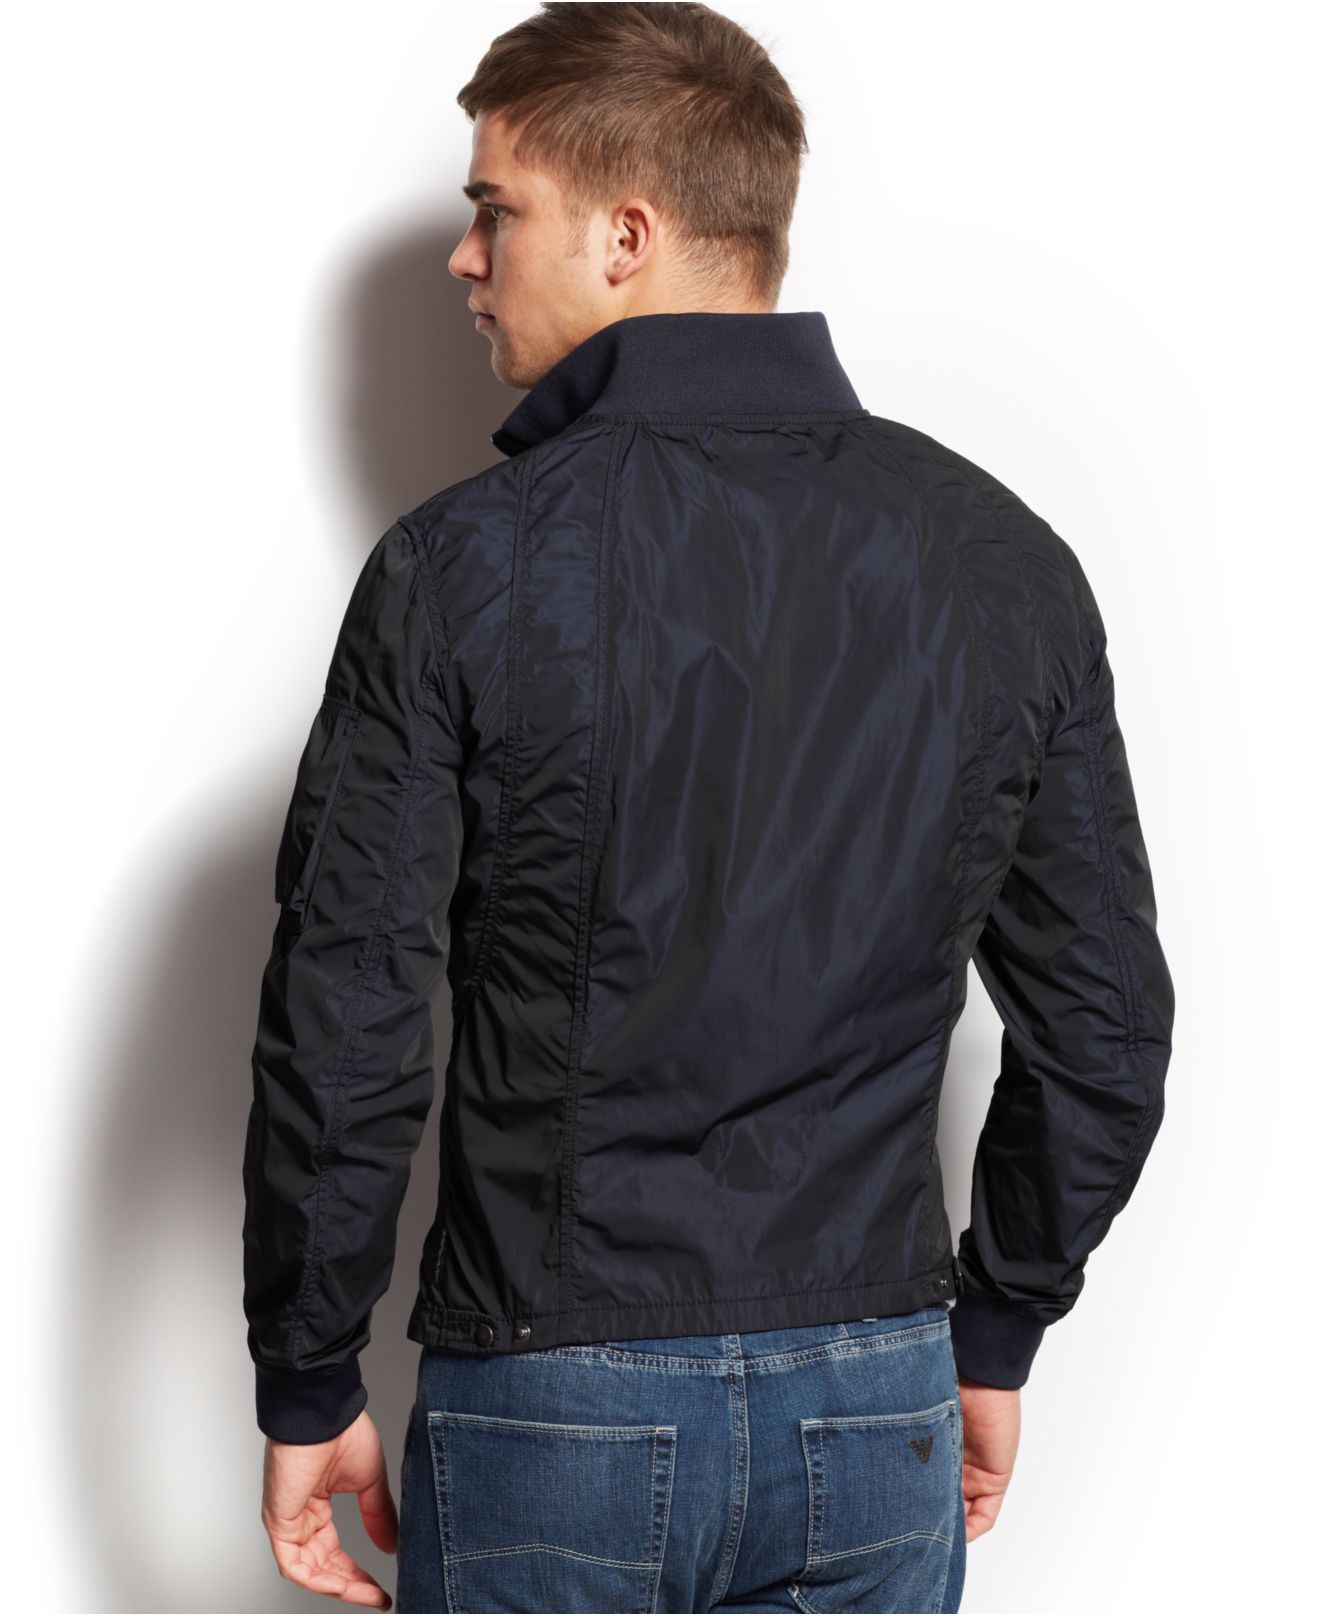 lyst armani jeans iridescent bomber jacket in black for men. Black Bedroom Furniture Sets. Home Design Ideas